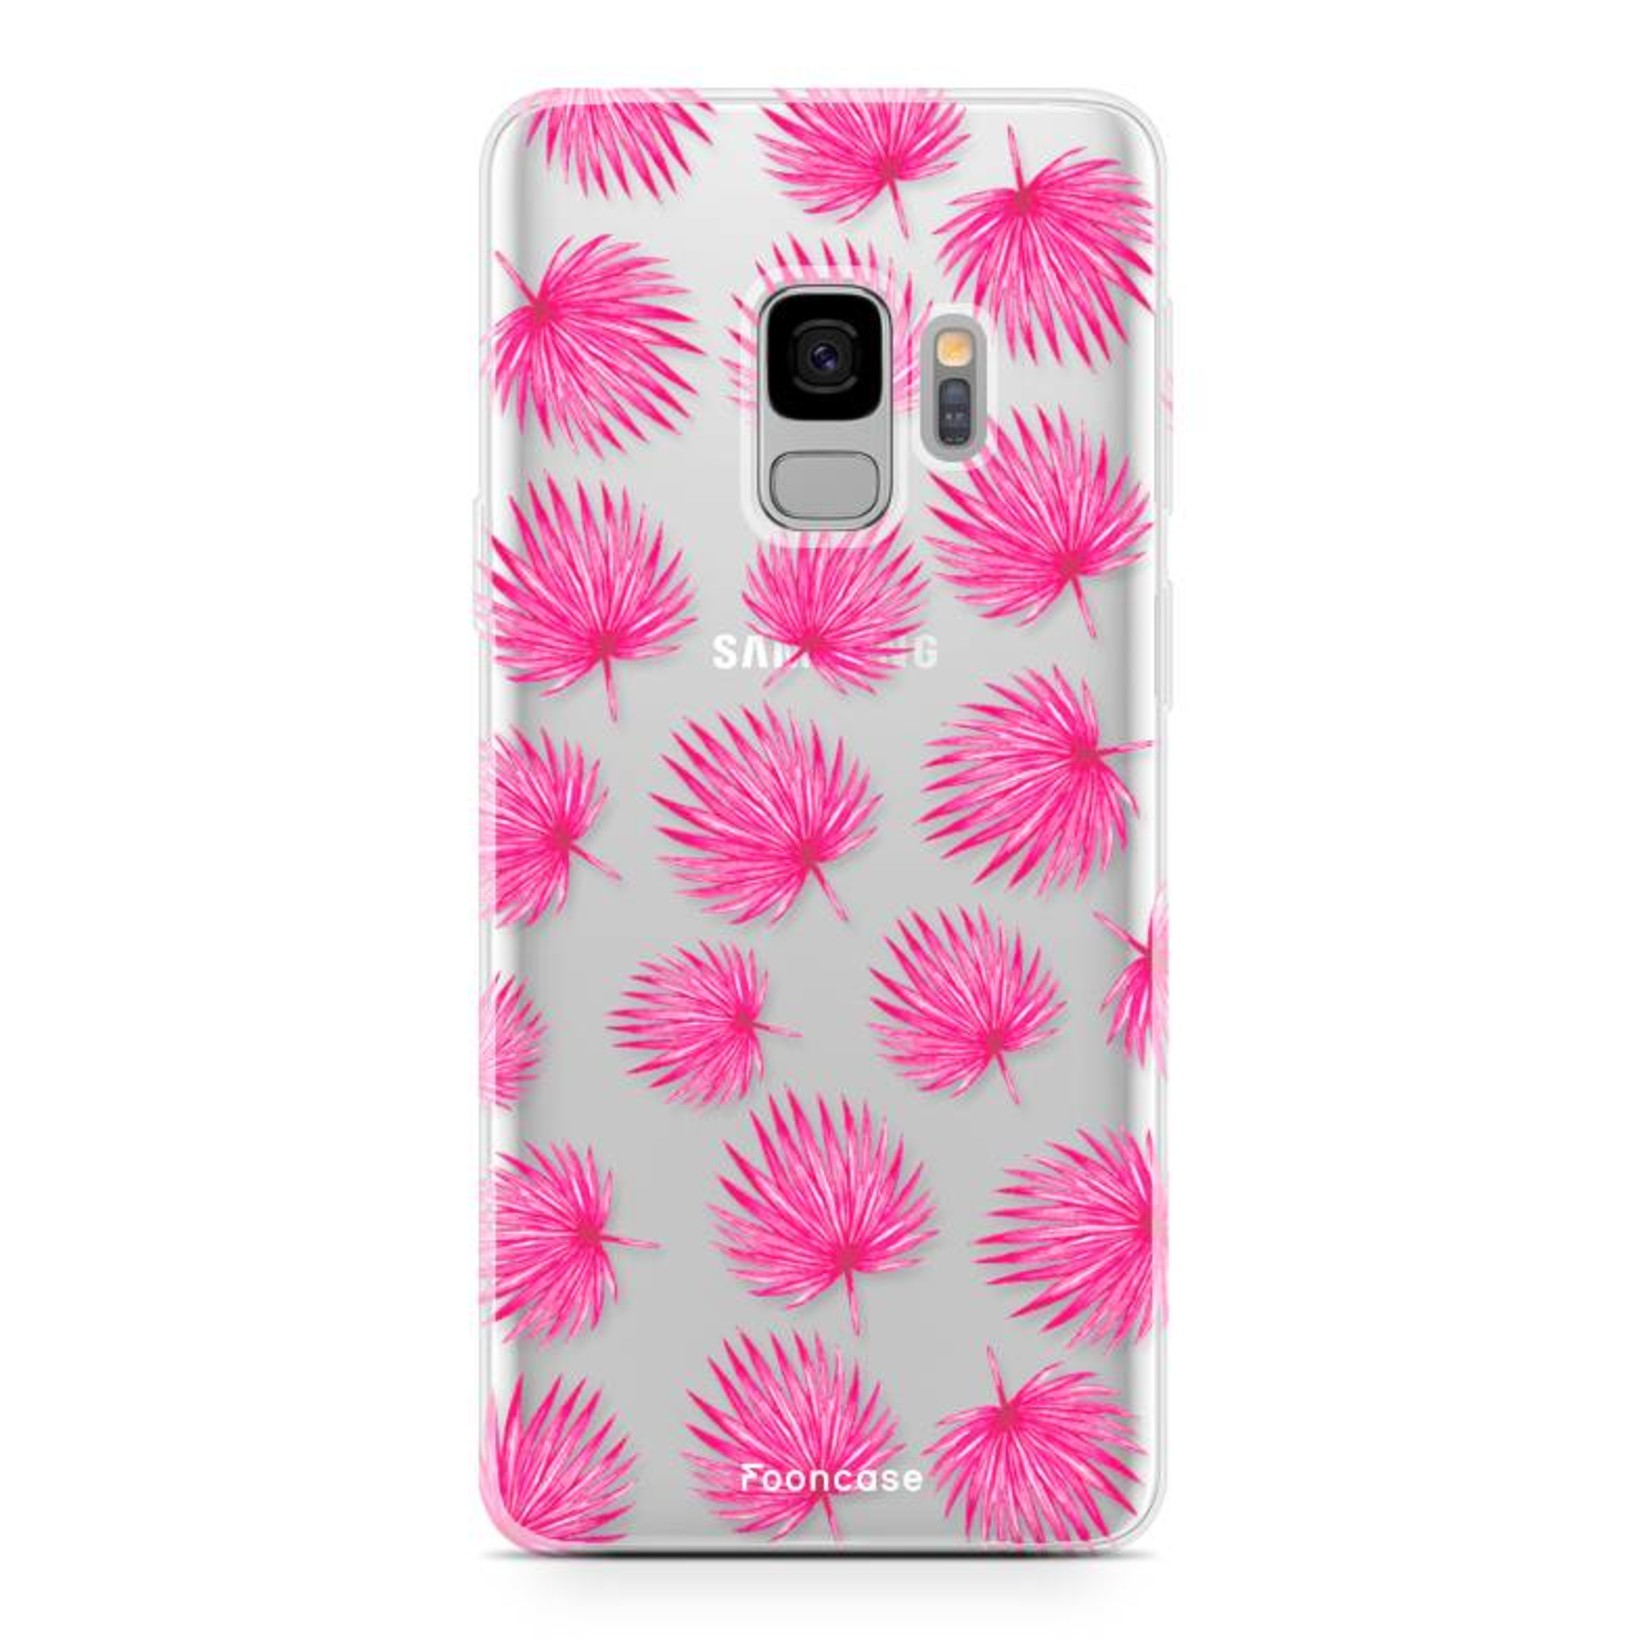 FOONCASE Samsung Galaxy S9 hoesje TPU Soft Case - Back Cover - Pink leaves / Roze bladeren